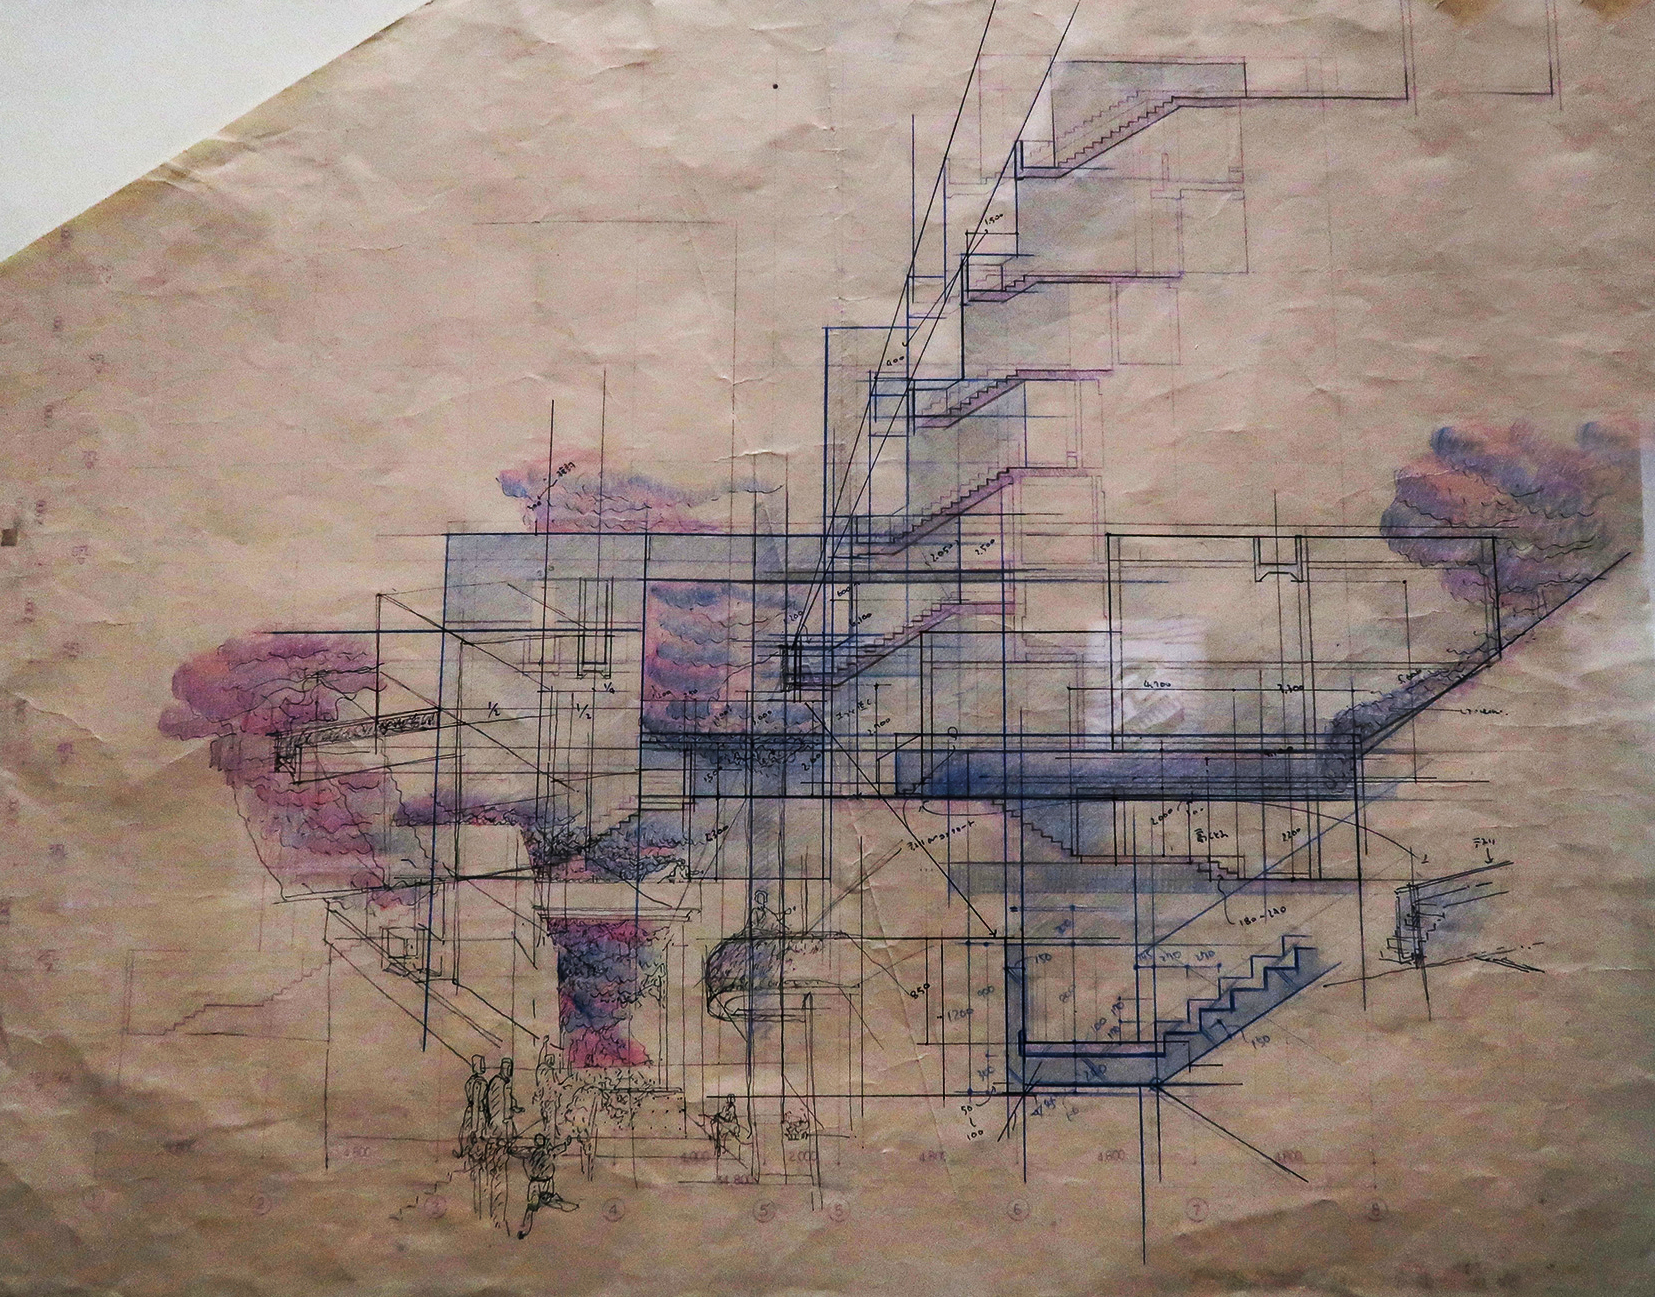 Sketch by Tadao Ando, exhibited at The Challenge| The Challenge| Tadao Ando| Armani/Silos| STIR